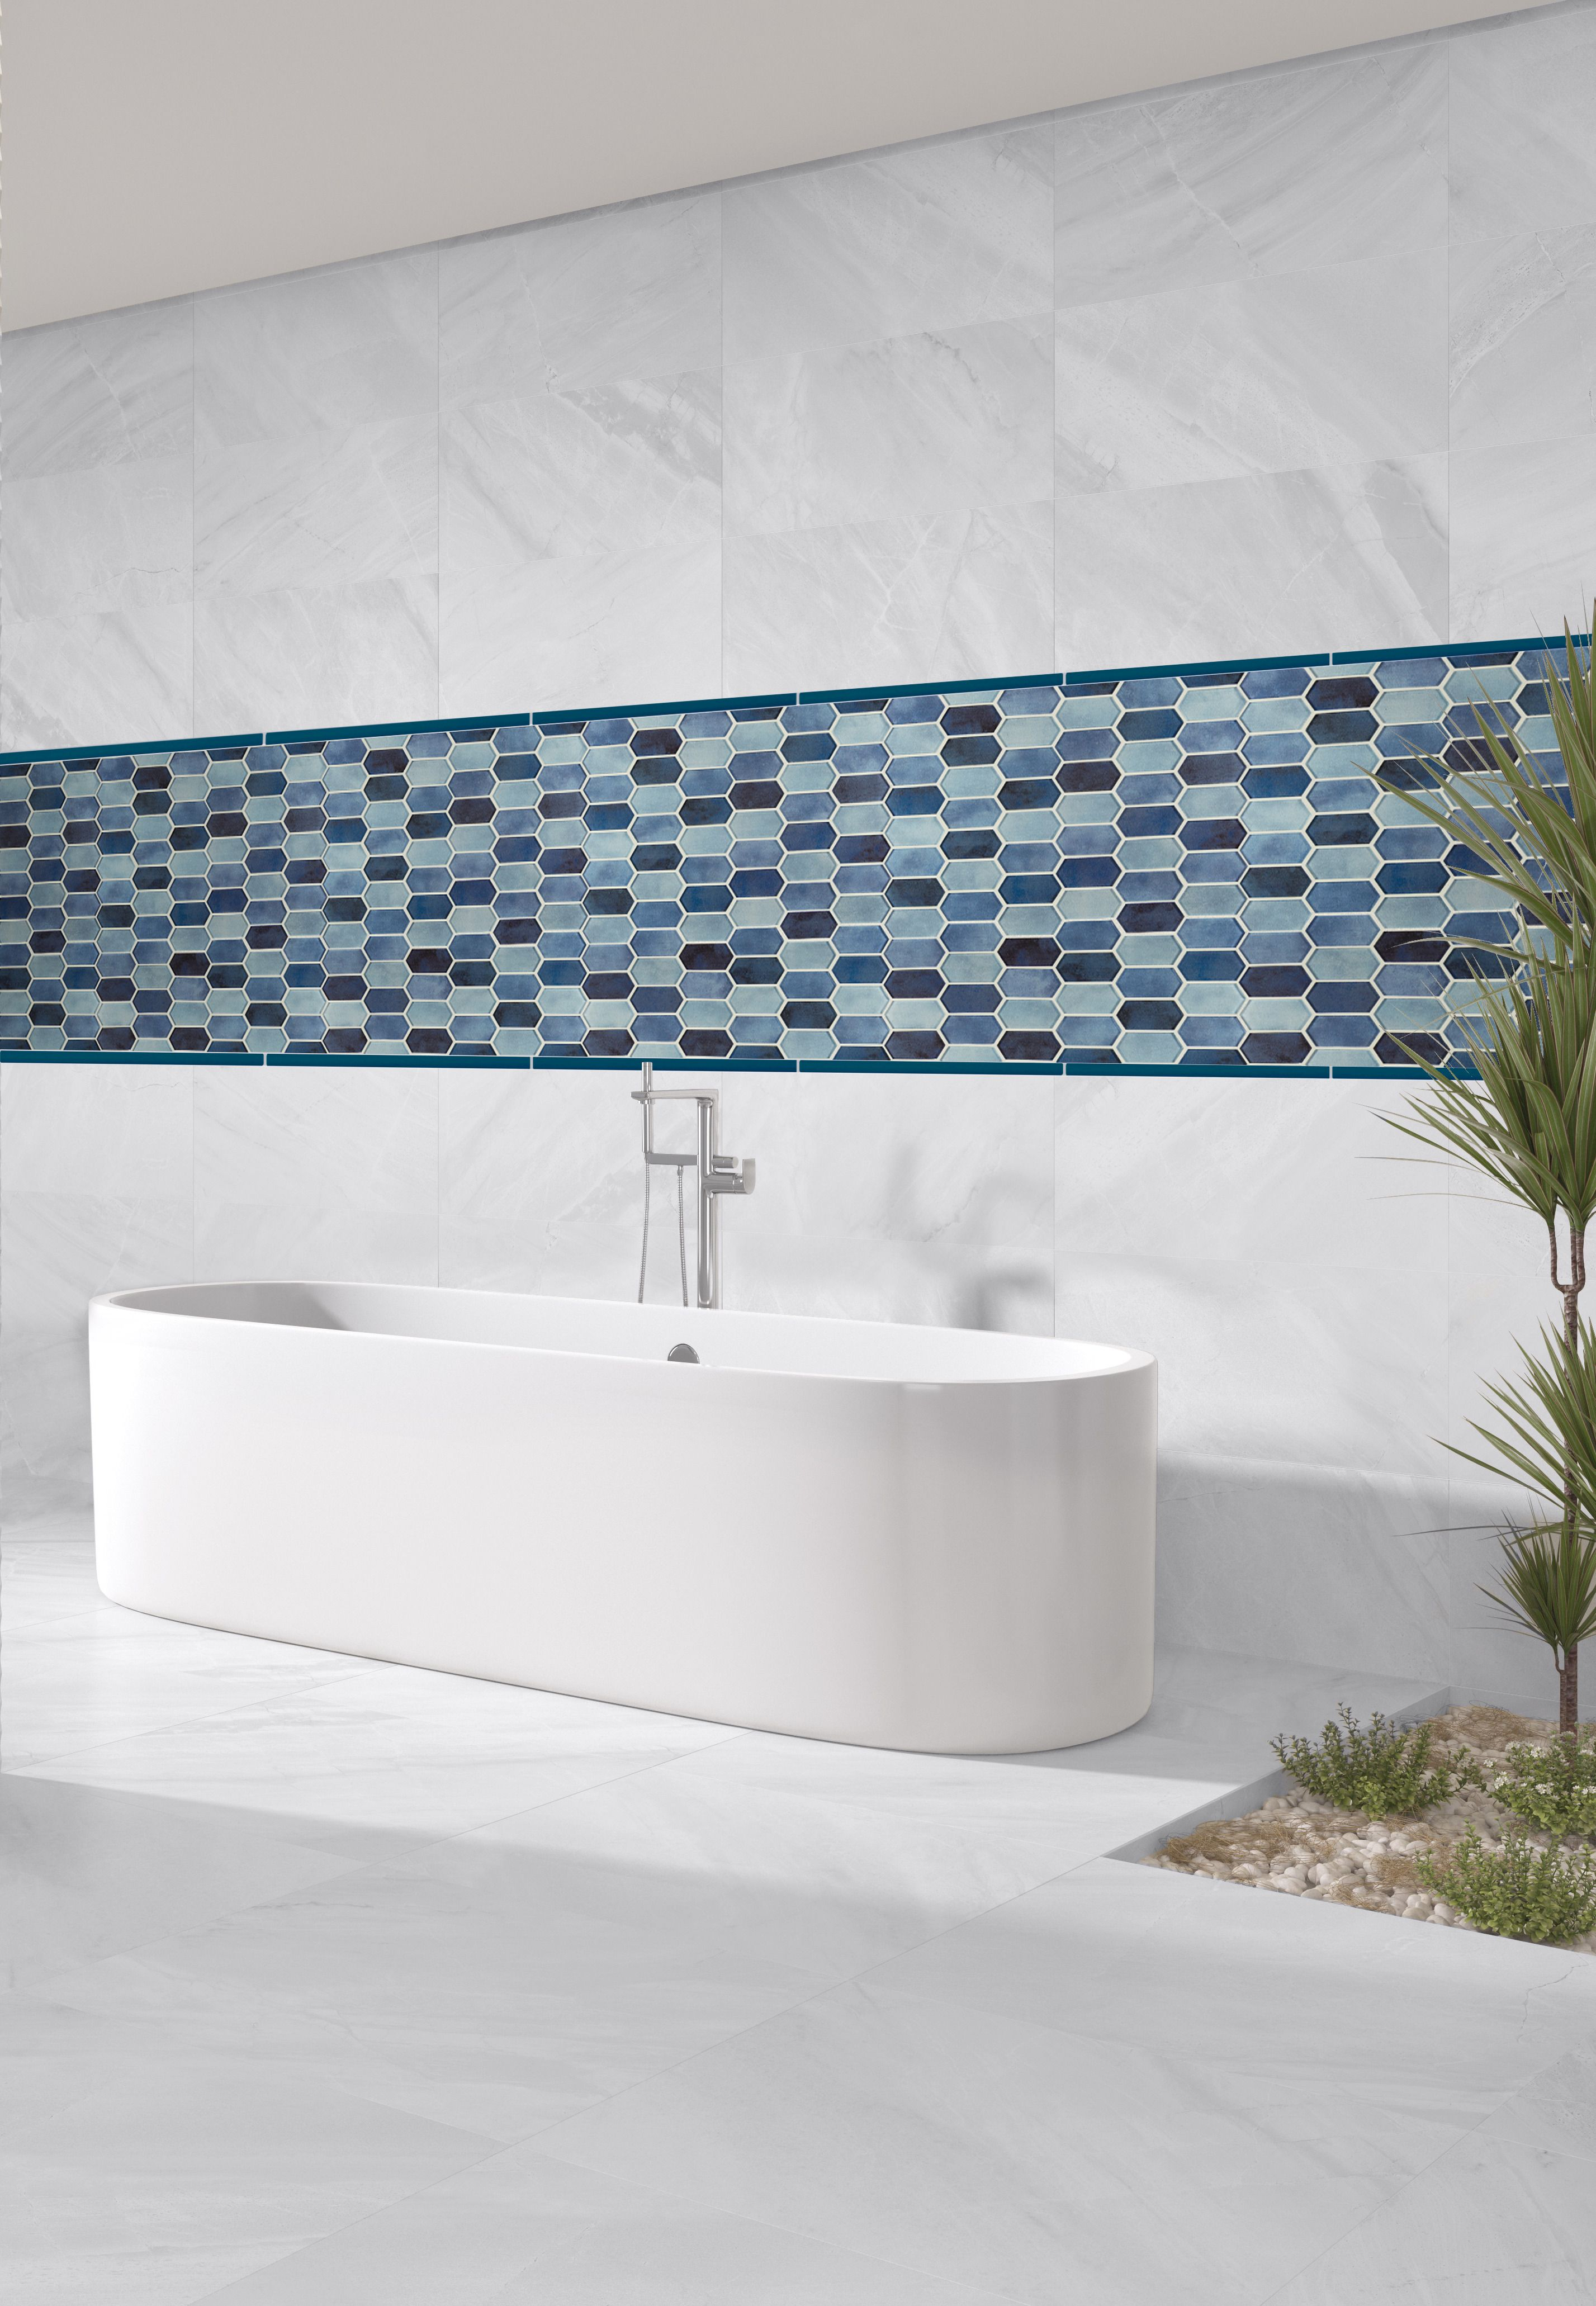 Boathouse Blue Picket 8mm Mosaic In 2020 Glass Mosaic Tiles Mosaic Wall Tiles Mosaic Glass